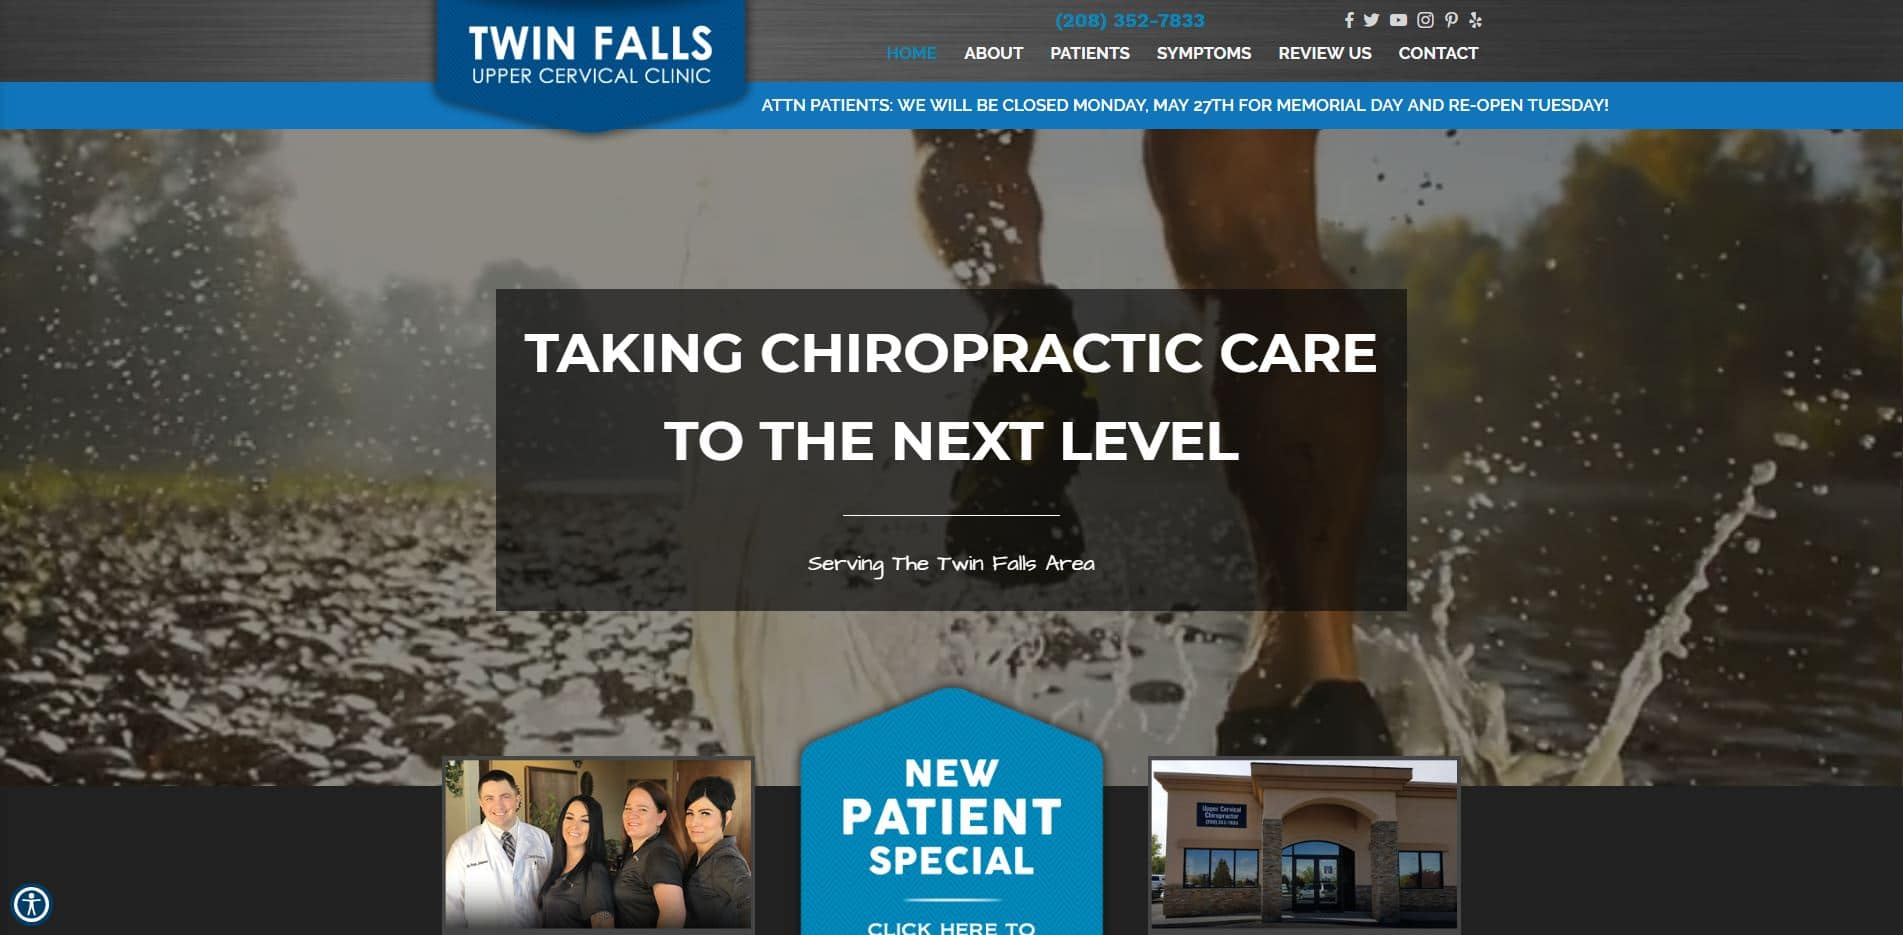 Chiropractor in Twin Falls